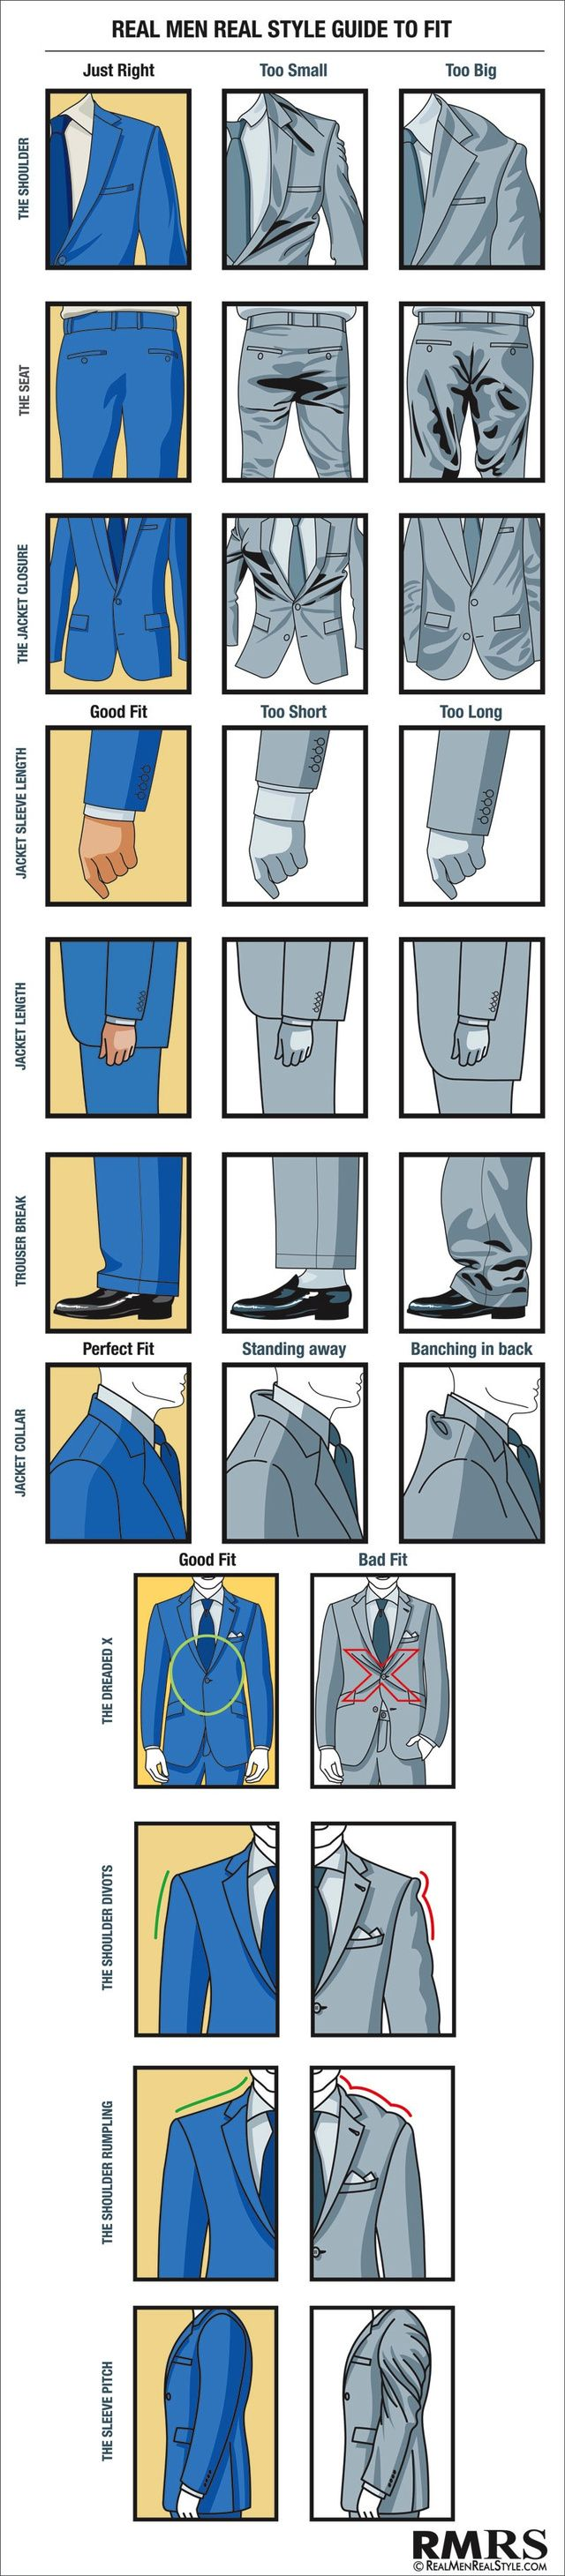 """This Visual Guide Outlines How Men's Suits Should Fit"" I use this all the time when buying suits... (yeah, right...)"